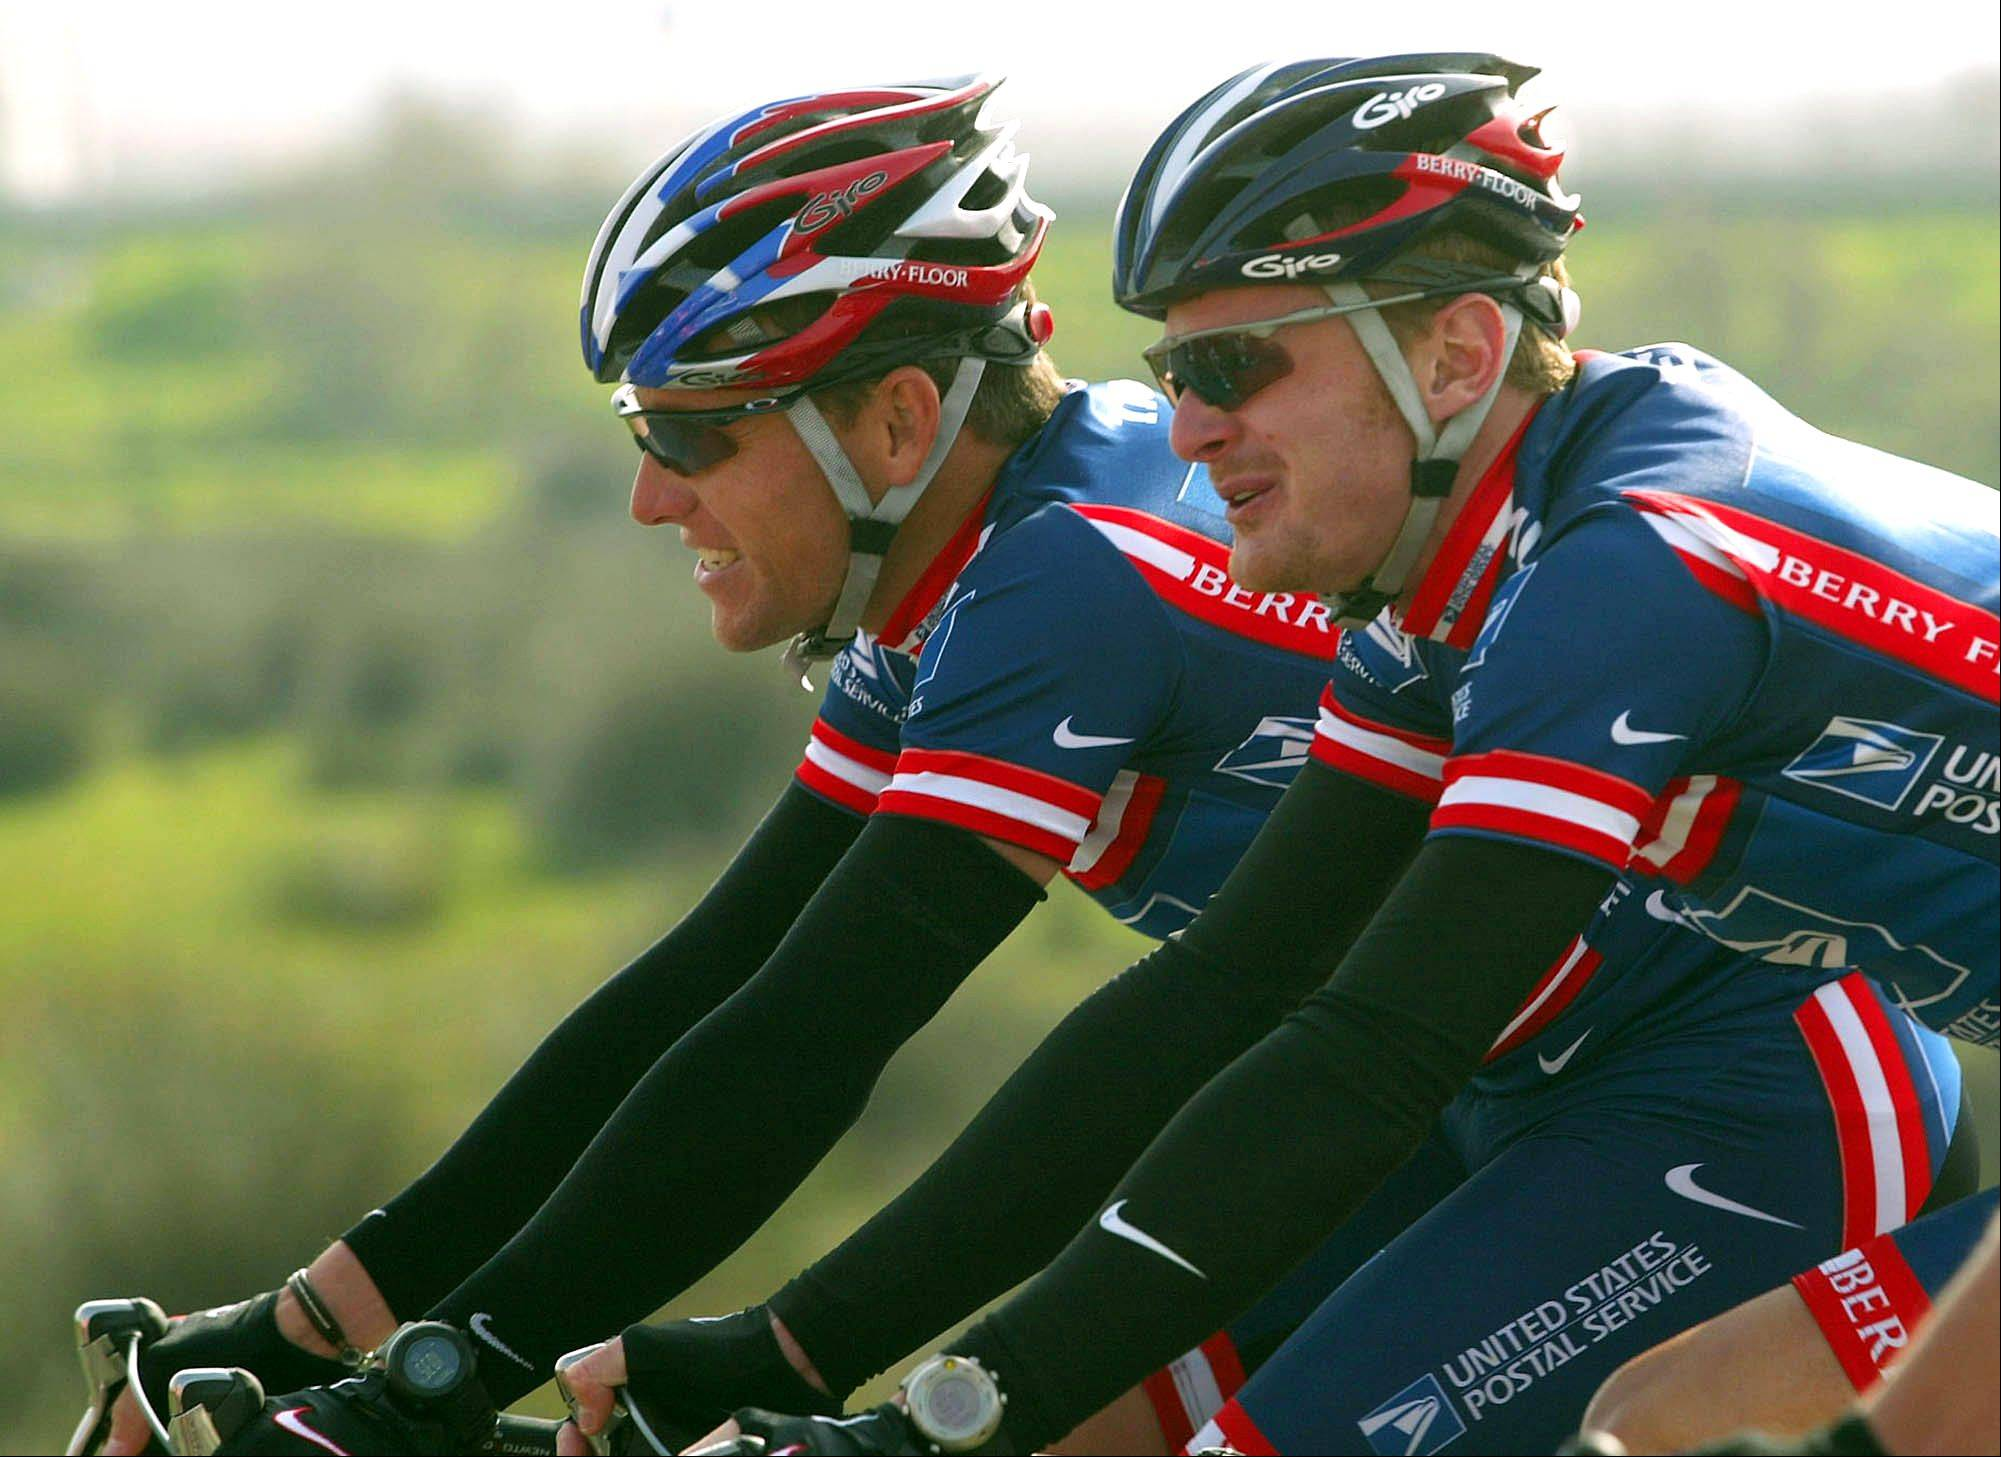 This Feb. 19, 2004, file photo shows Lance Armstrong, left, and Floyd Landis, riding side-by-side during the second stage of the 5-day Tour of the Algarve cycling race in Algarve, southern Portugal. Disgraced American cyclist Floyd Landis has admitted to systematic use of performance-enhancing drugs and accused seven-time Tour de France champion Lance Armstrong of involvement in doping, the Wall Street Journal reported Thursday, May 20, 2010.